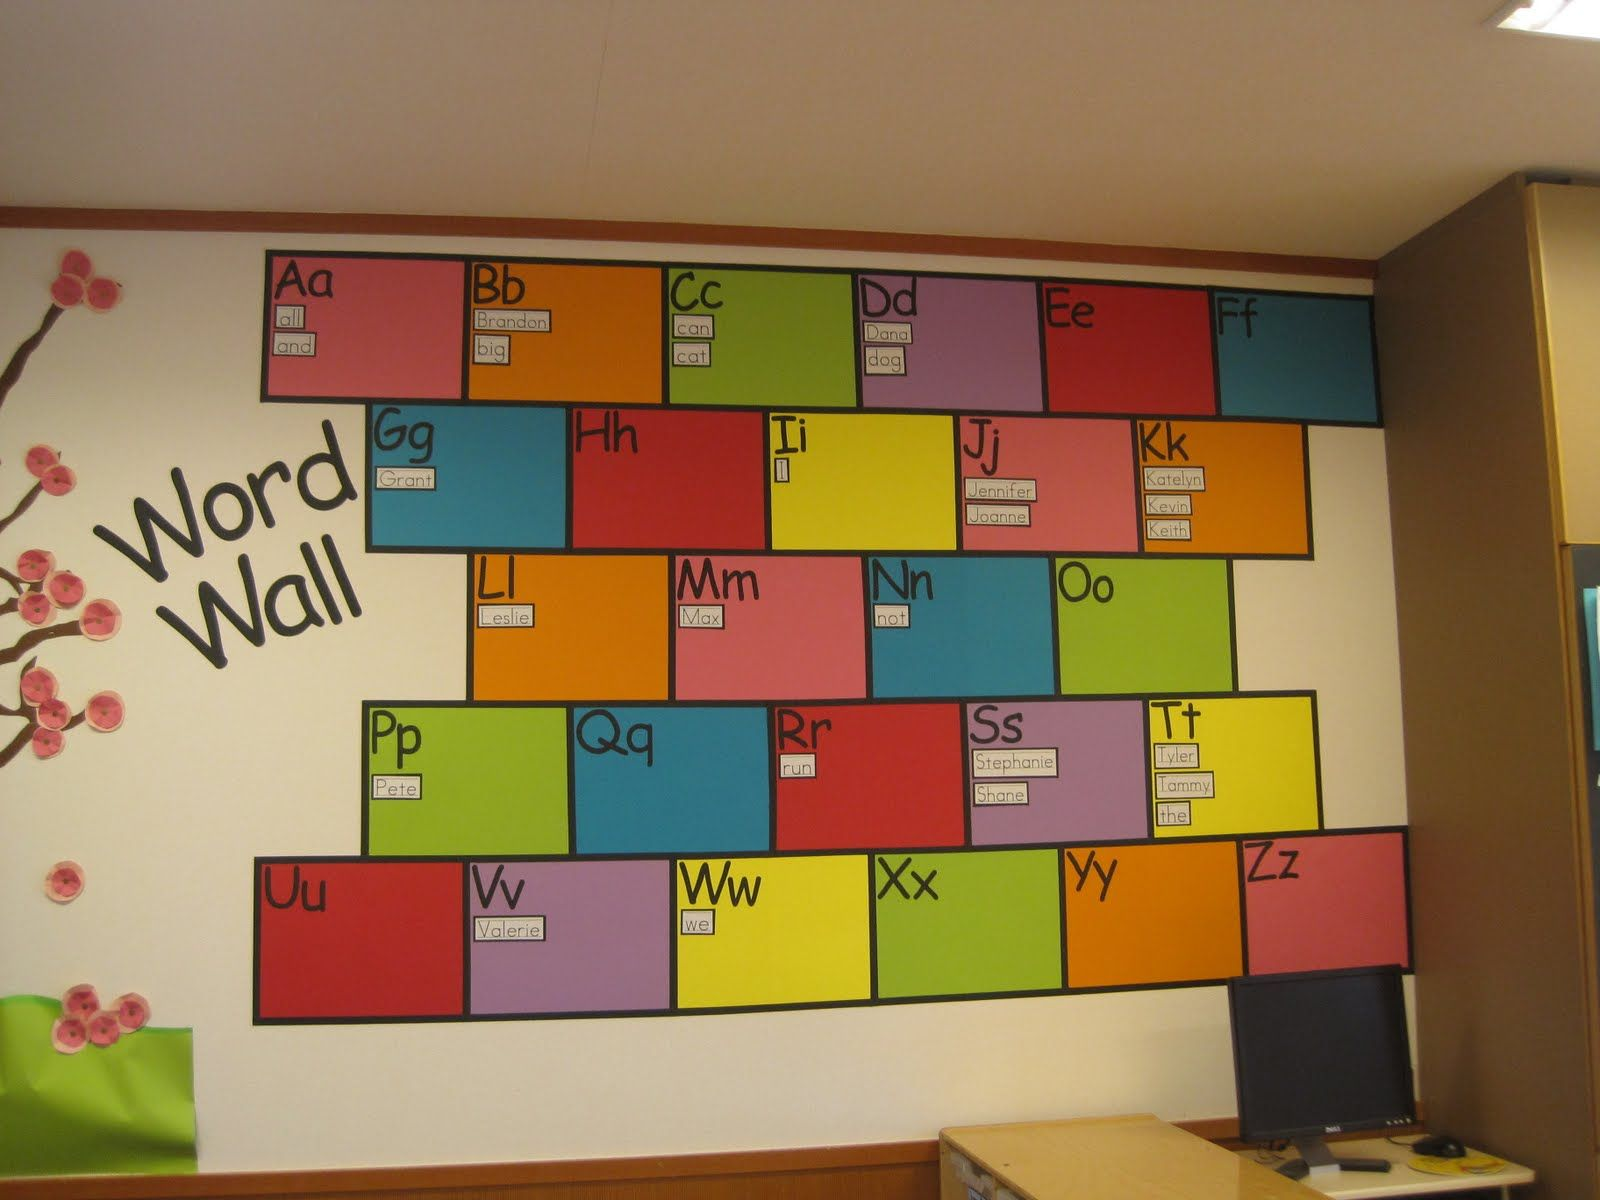 Different type of word wall idea... http://melaniefullerton.blogspot.com/2010_04_01_archive.html